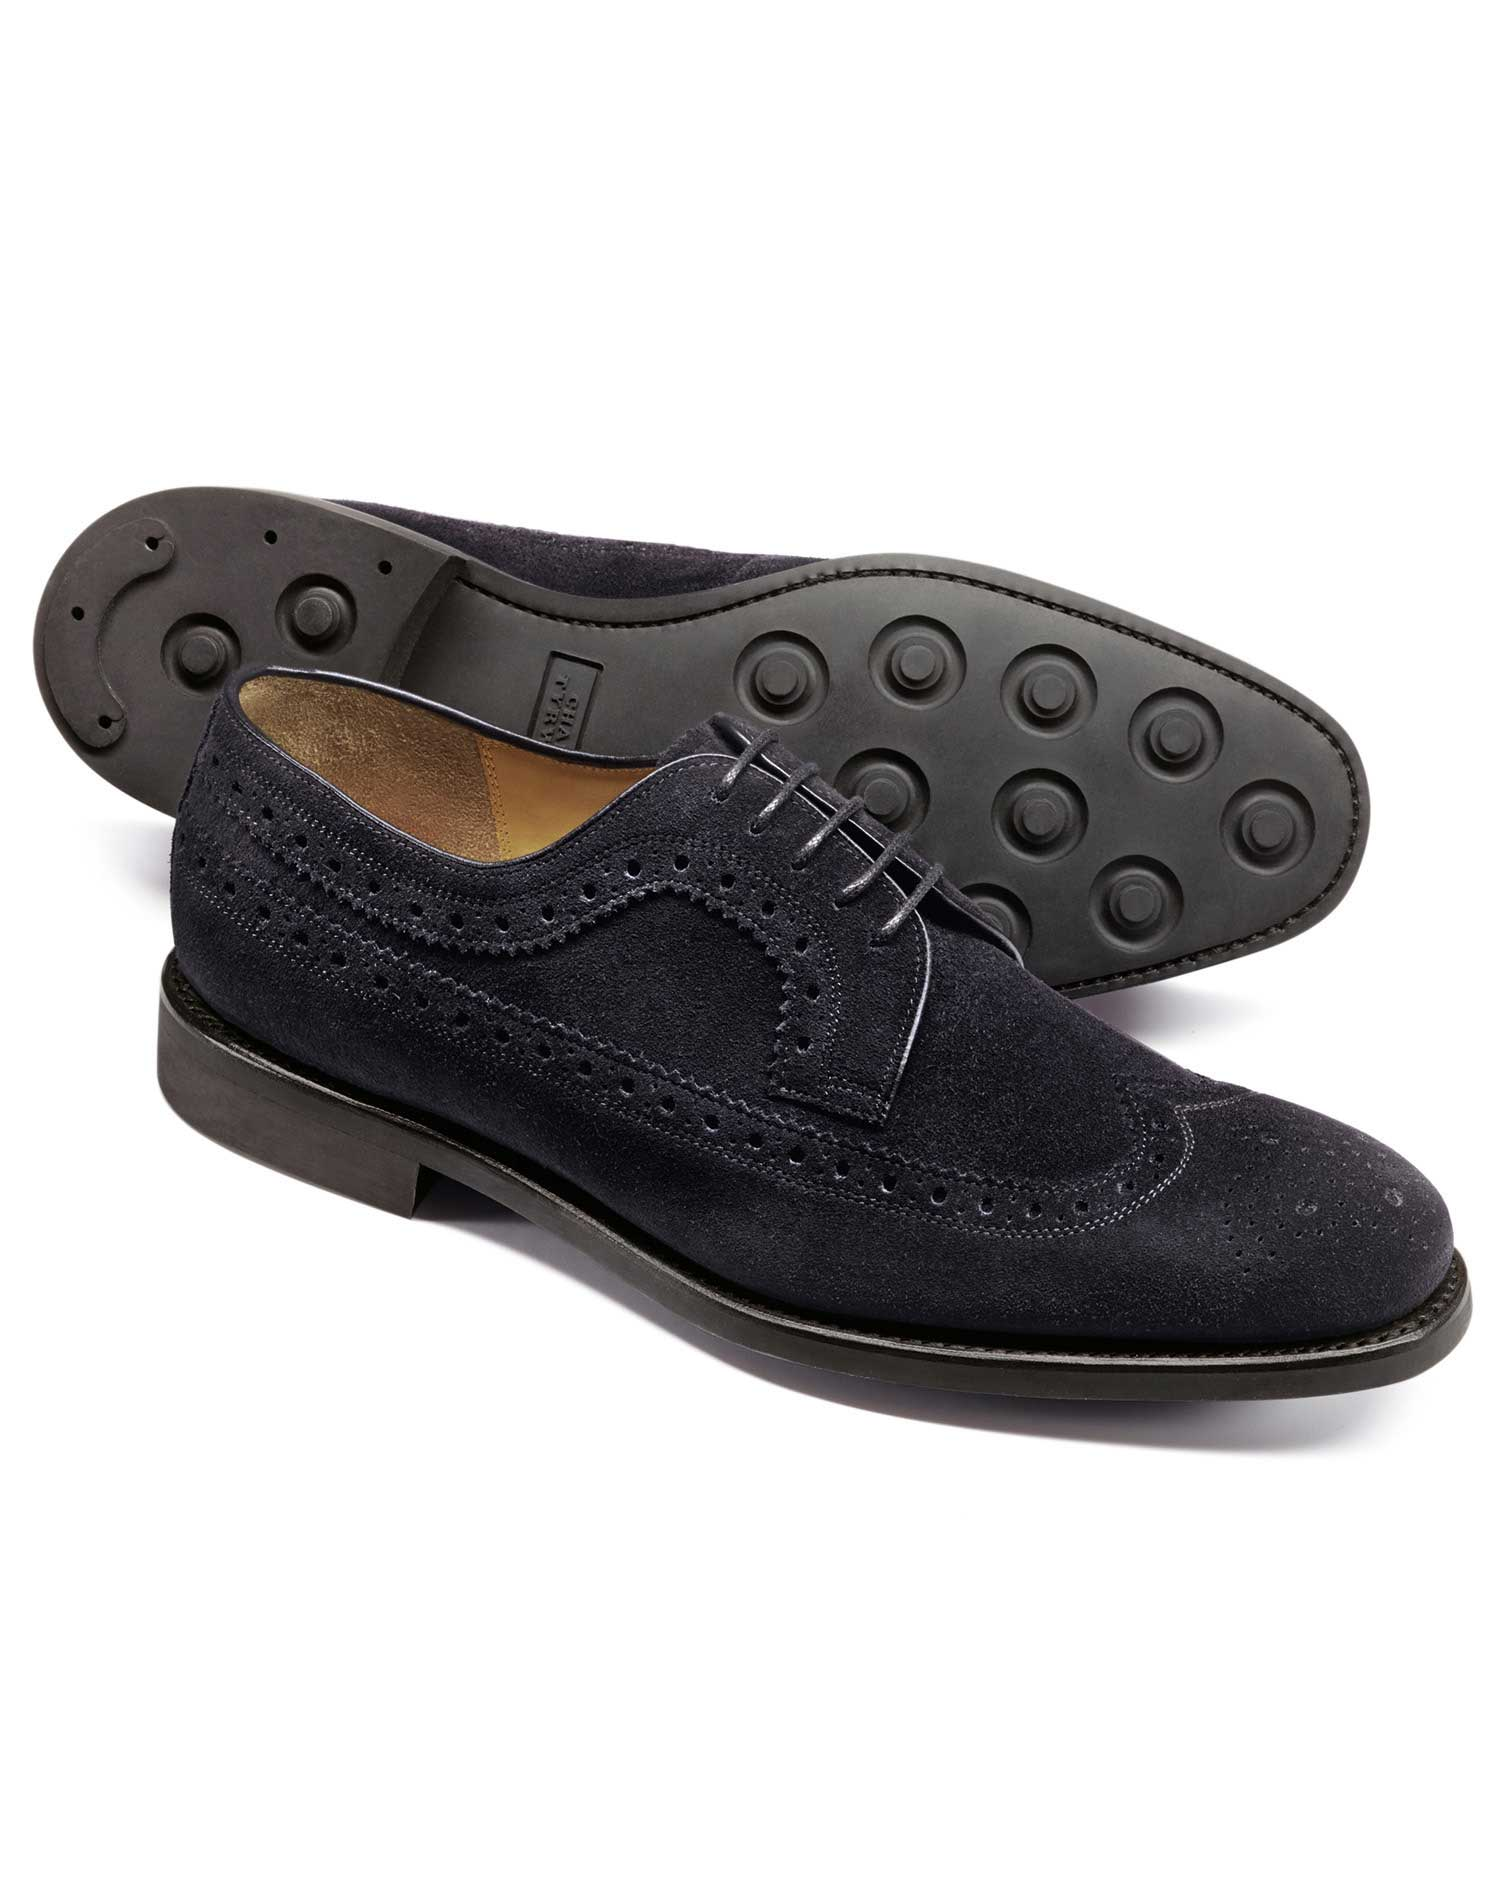 Dark Navy Suede Goodyear Welted Derby Wing Tip Brogue Shoes Size 9.5 W by Charles Tyrwhitt